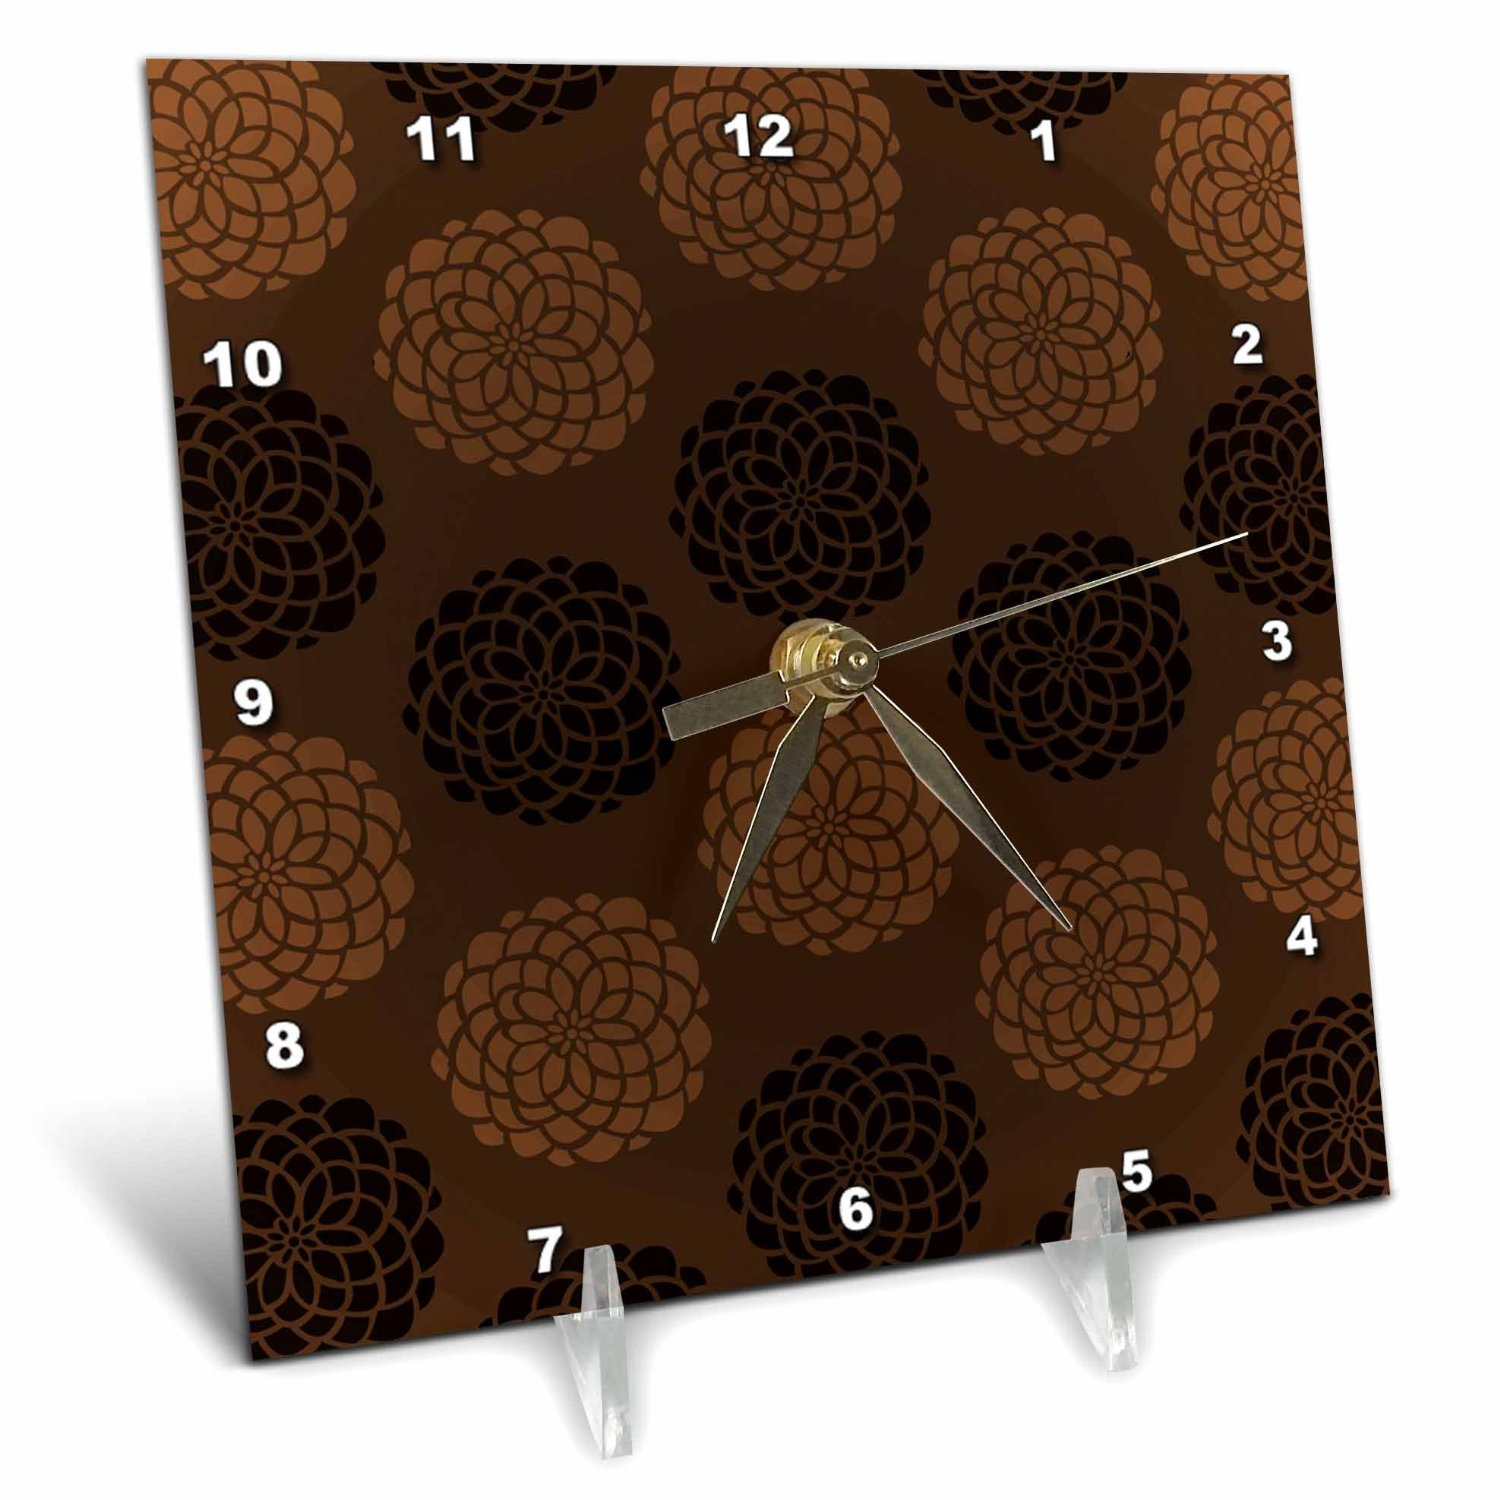 3dRose Contemporary Light and Dark Brown Large Mums Flower Pattern, Desk Clock, 6 by 6-inch by 3dRose